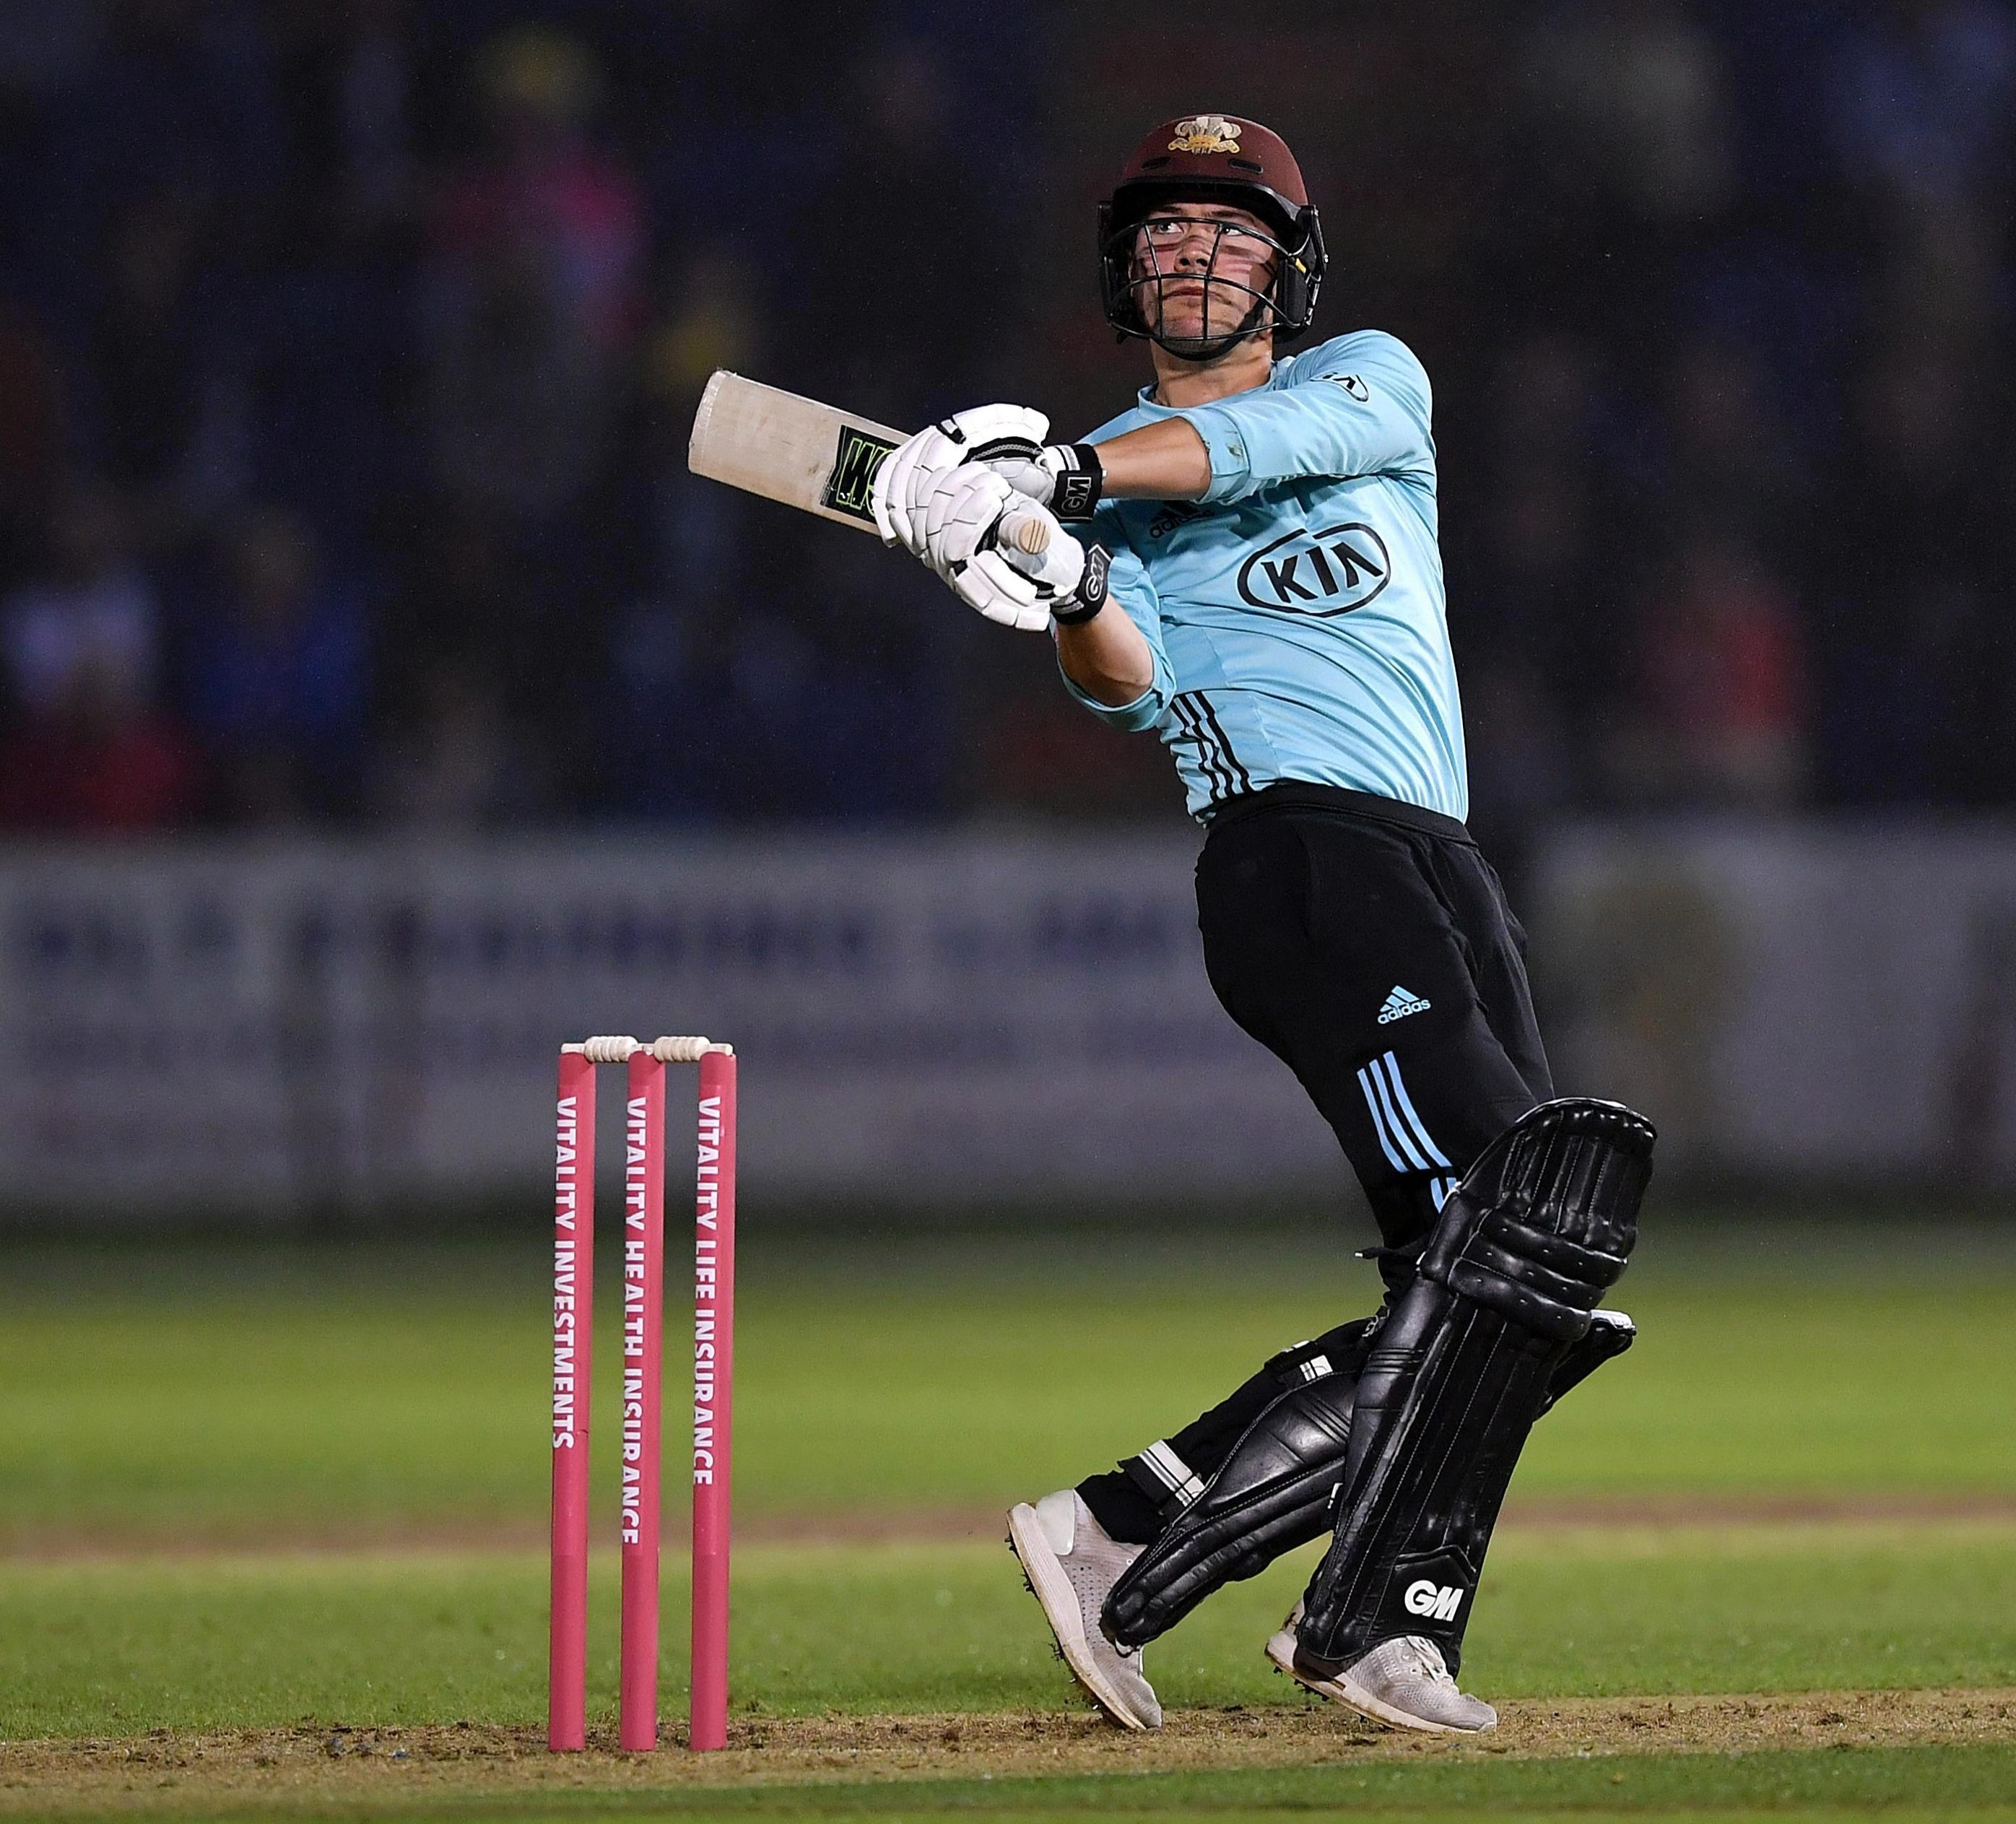 Surrey star Rory Burns is next in line to be called in as an England opener or No 3 - but being left-handed against world-class Indian spinners is a big disadvantage